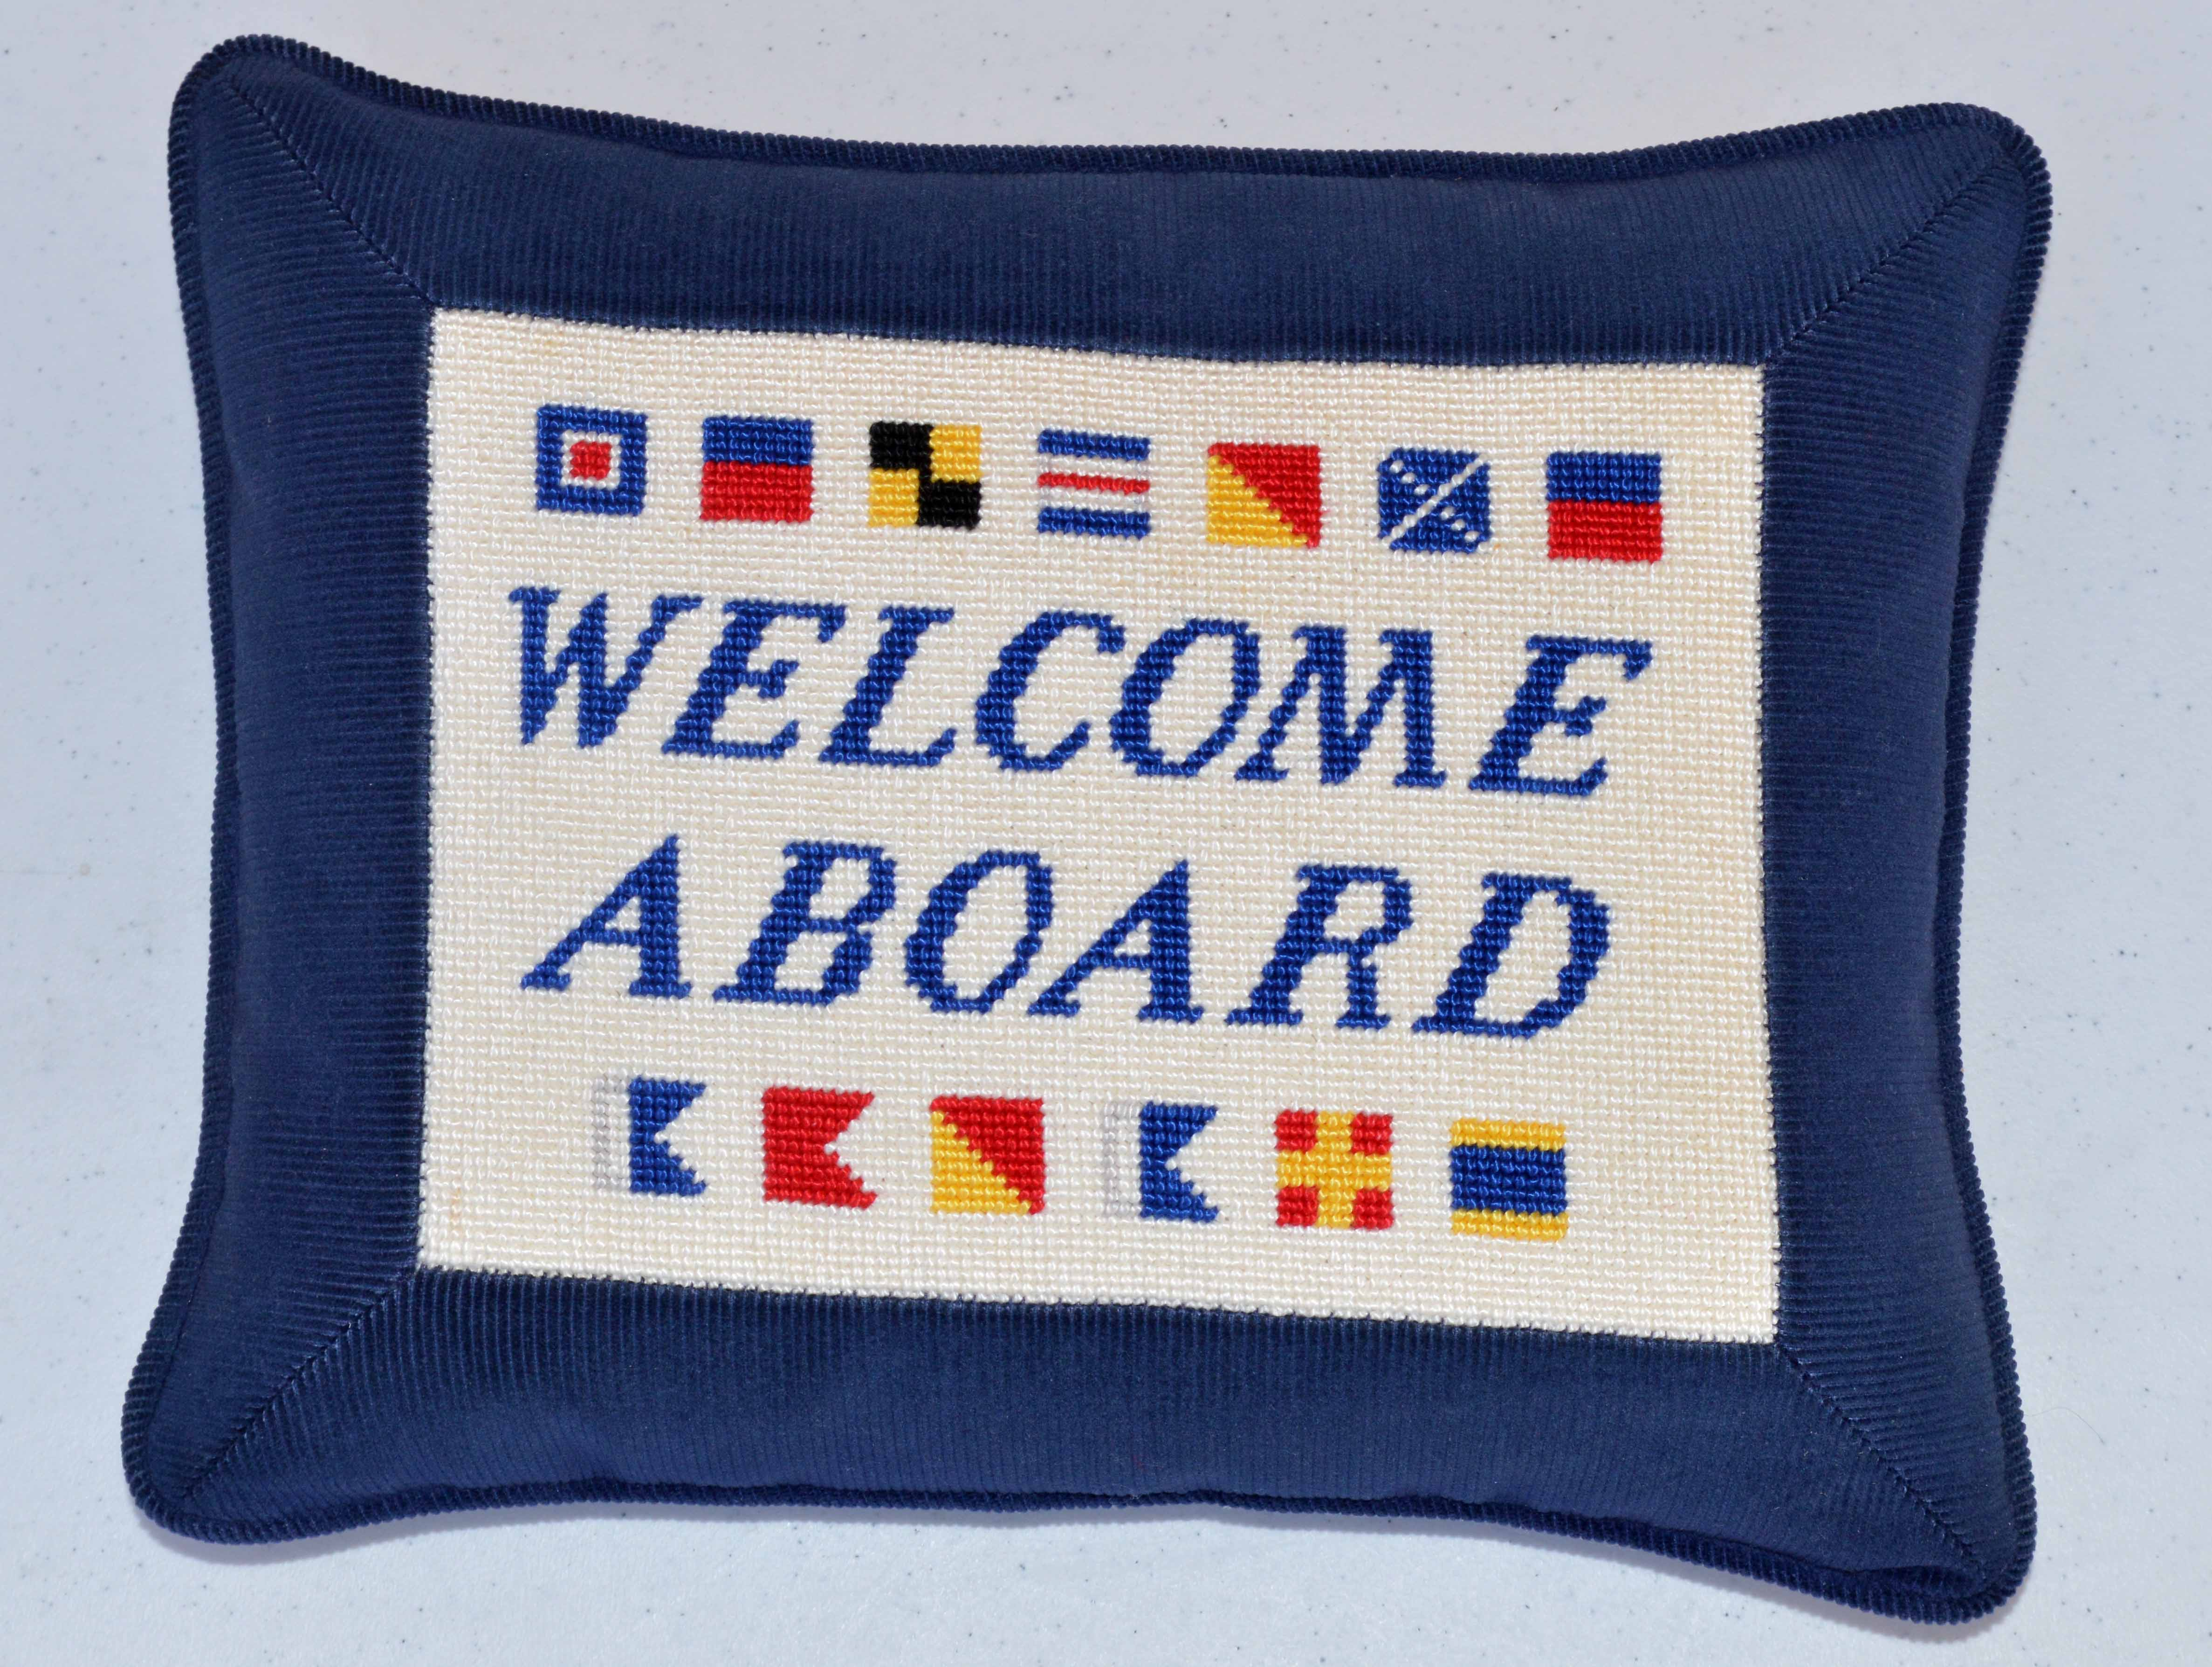 Needlepoint-welcomeaboard.jpg